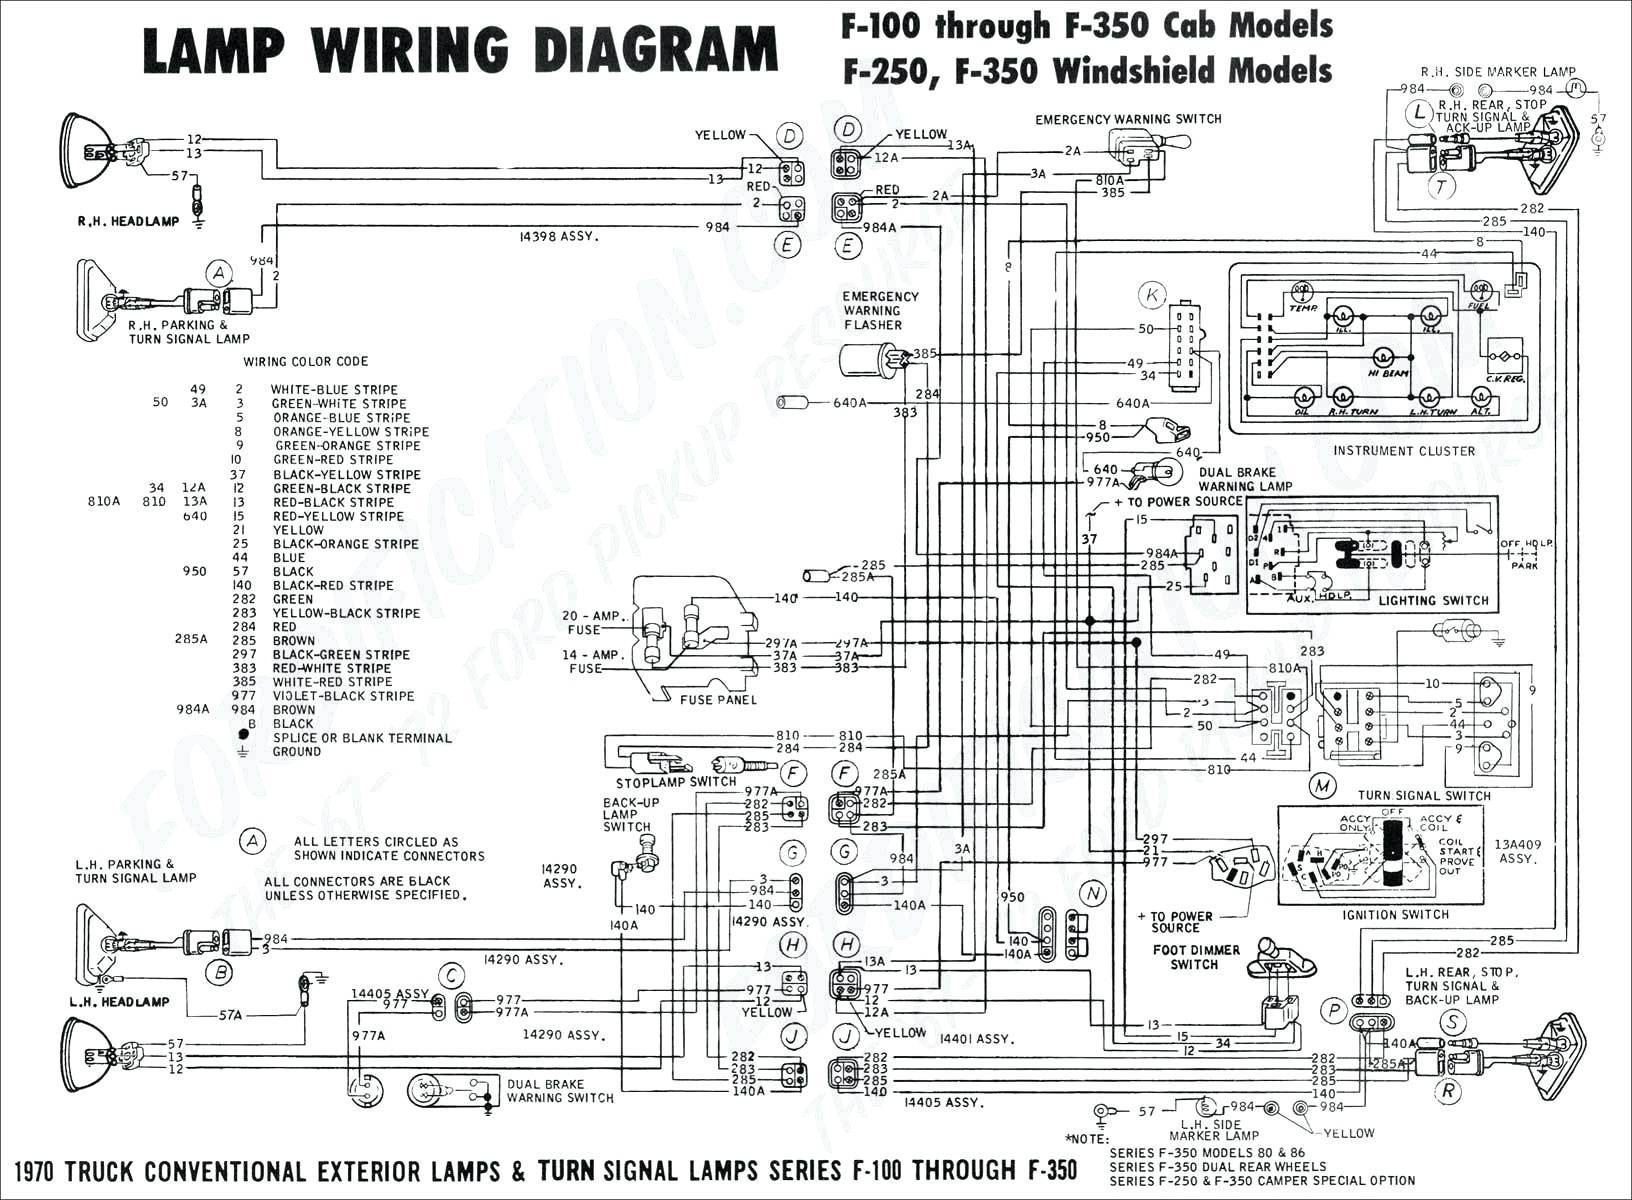 Parts Under the Hood Of A Car Diagram 2001 F250 Engine Diagram Experts Wiring Diagram • Of Parts Under the Hood Of A Car Diagram